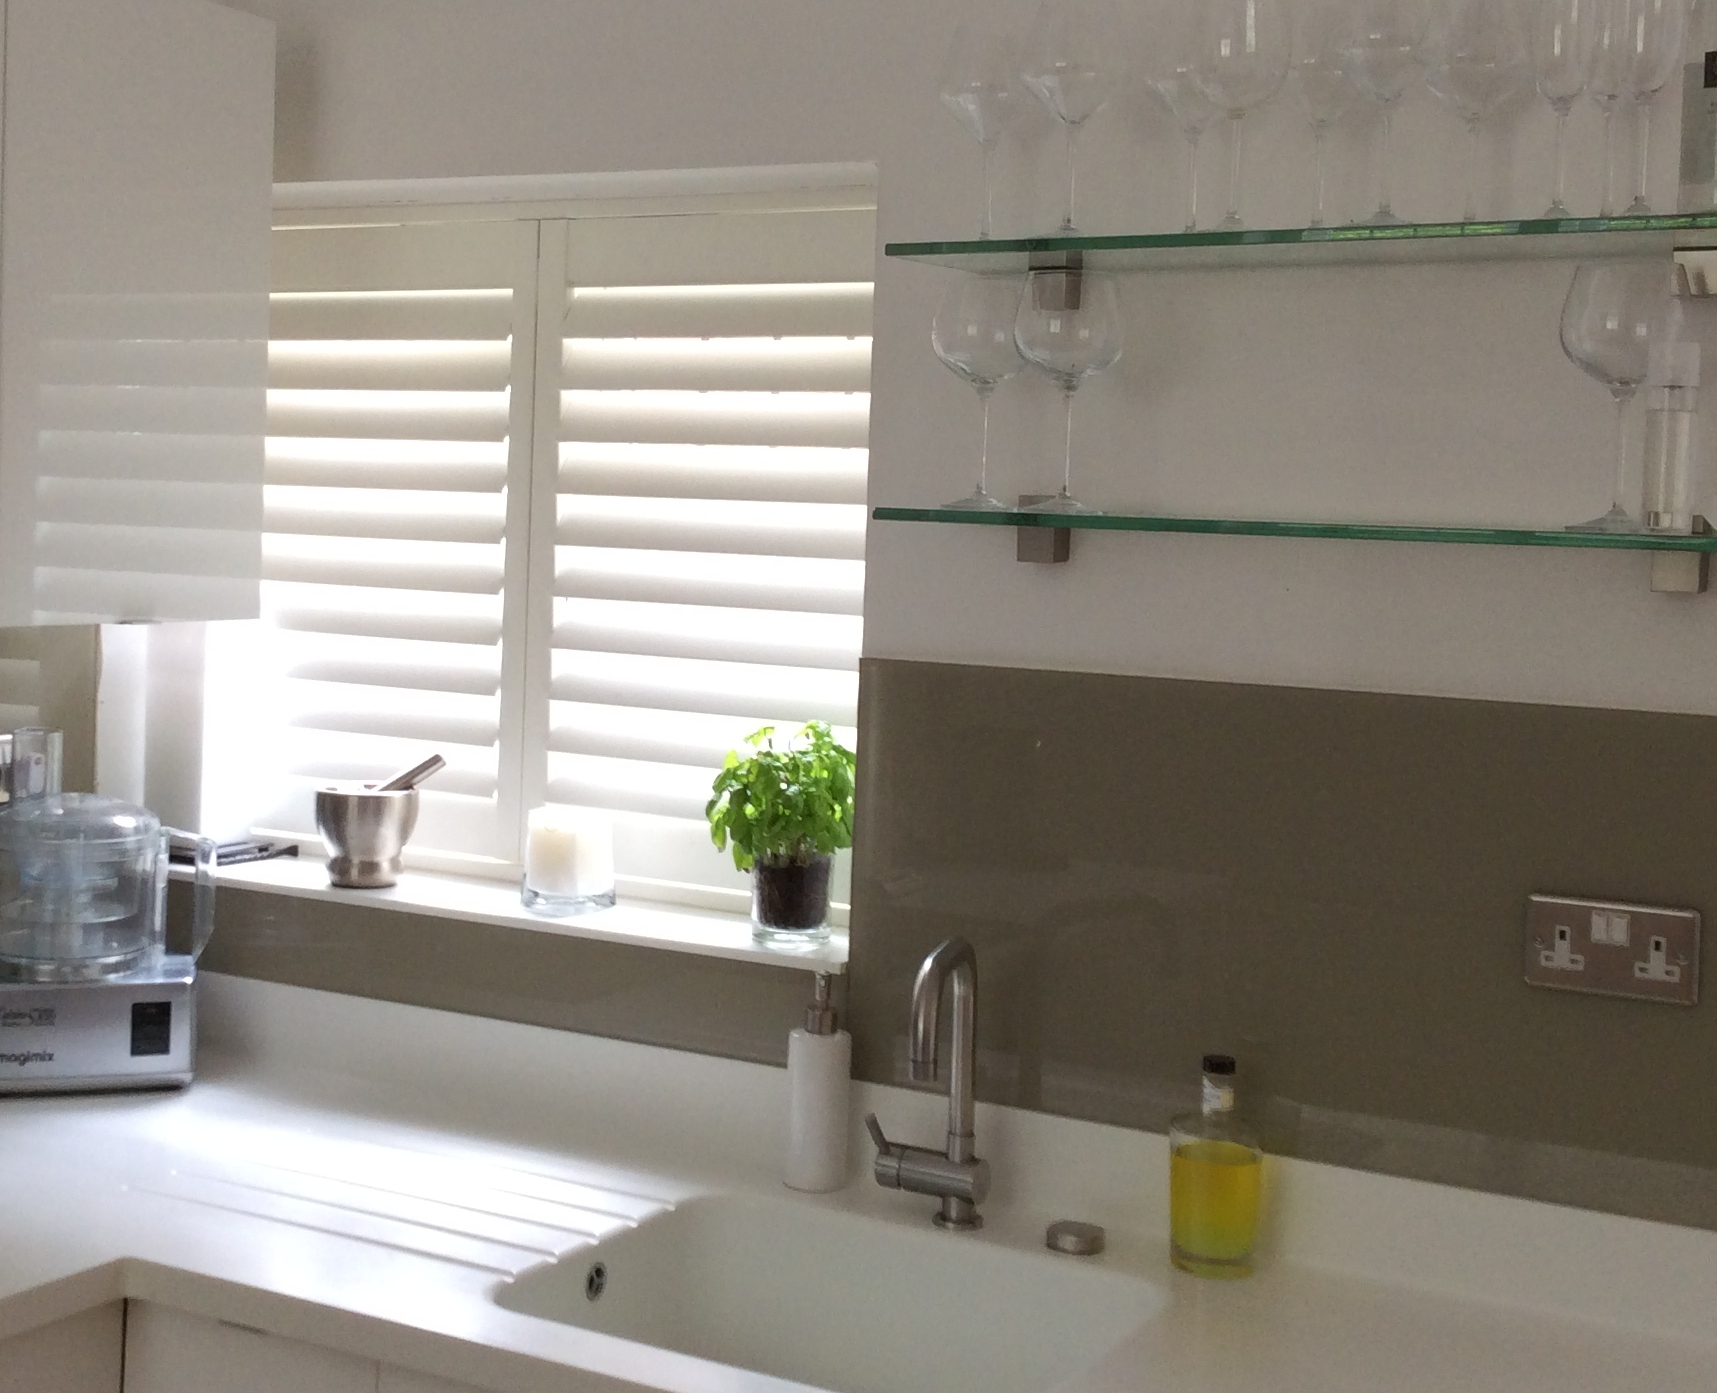 Low cost kitchen shutters give a stylish finish at a great price.